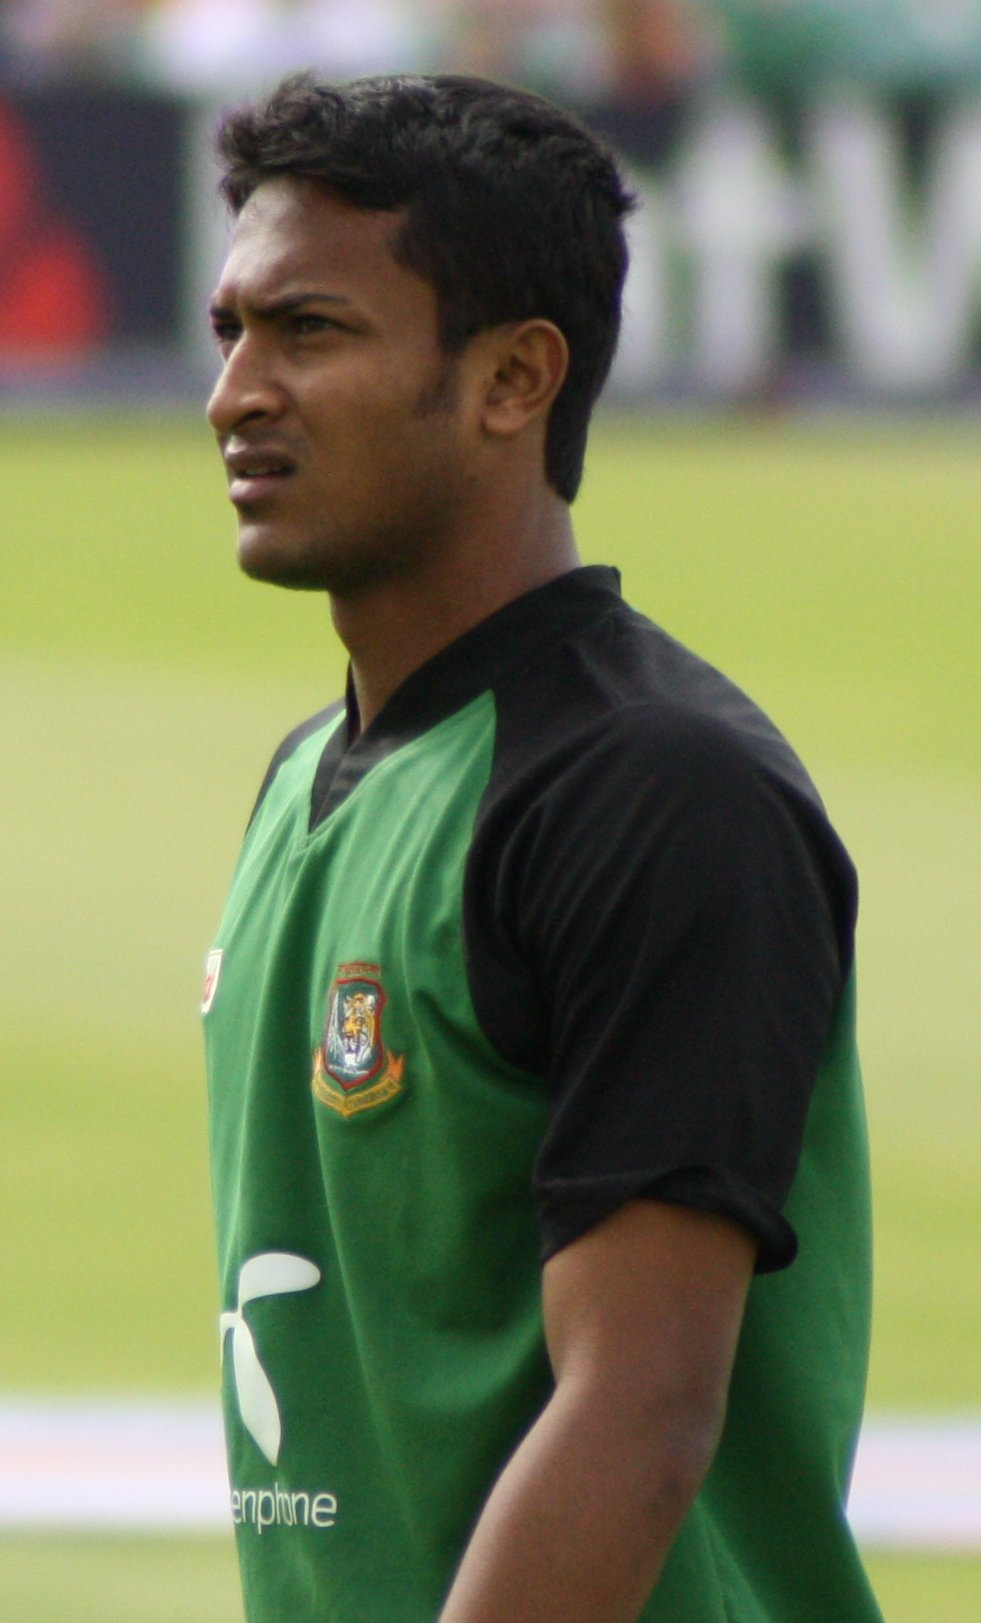 Shakib Al Hasan (Cricketer) in the past